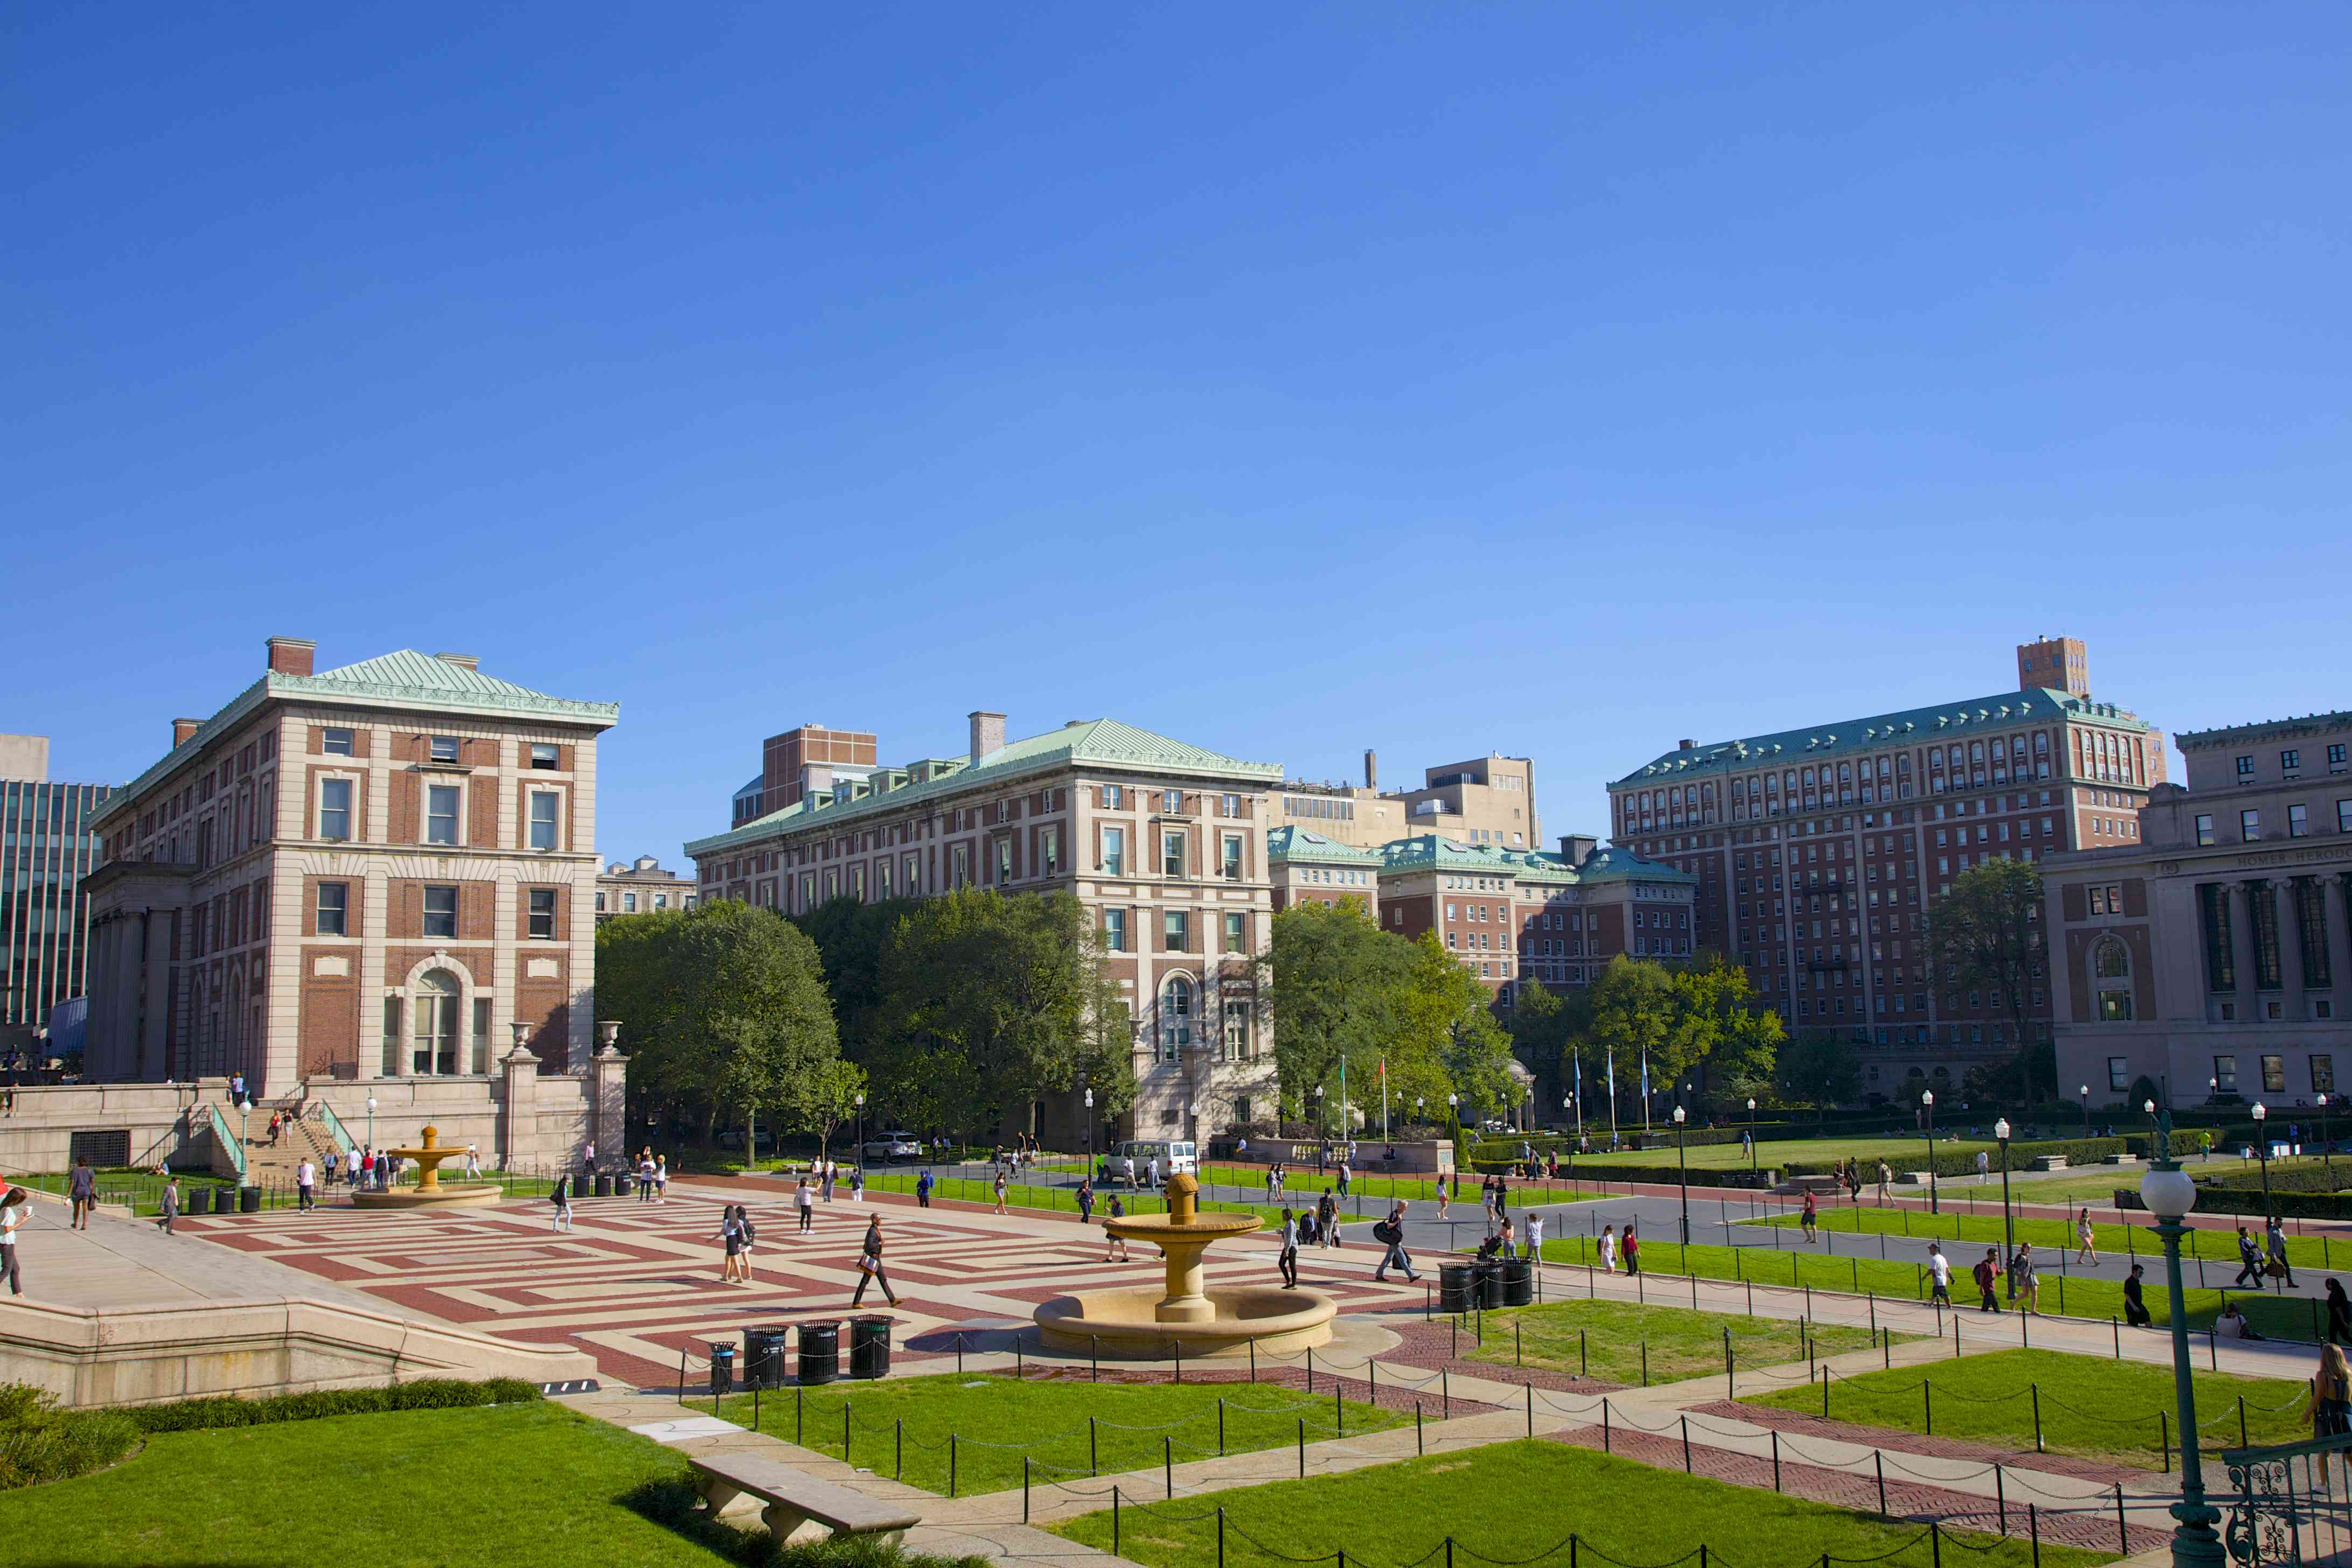 Lawns, plaza and academic buildings, New York